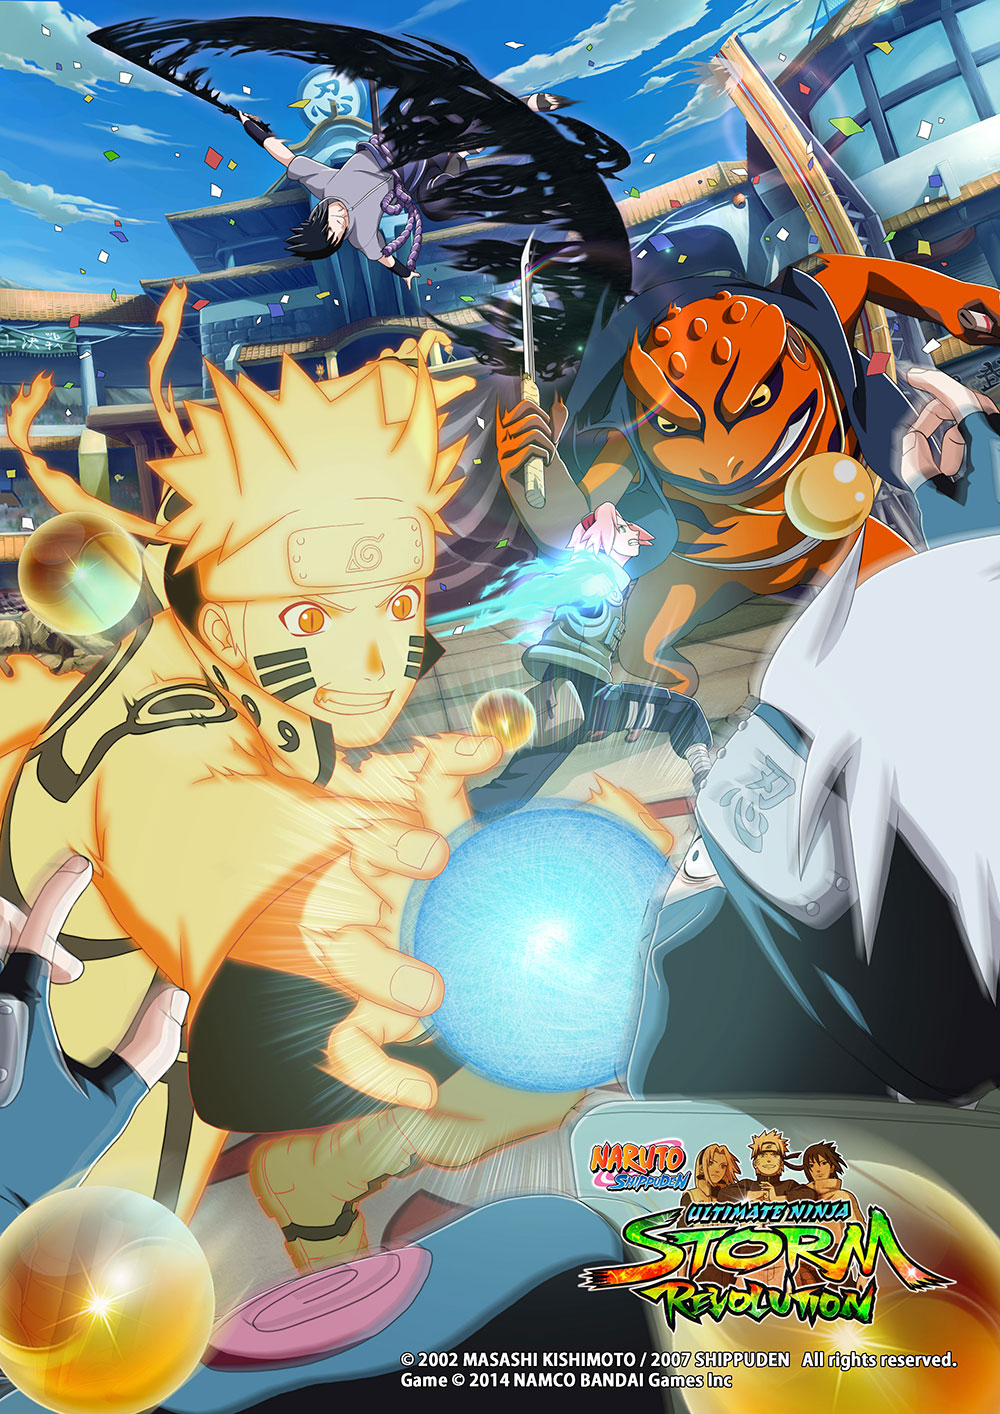 Naruto Shippuden Ultimate Ninja Storm Revolution April 2014 Visual 1